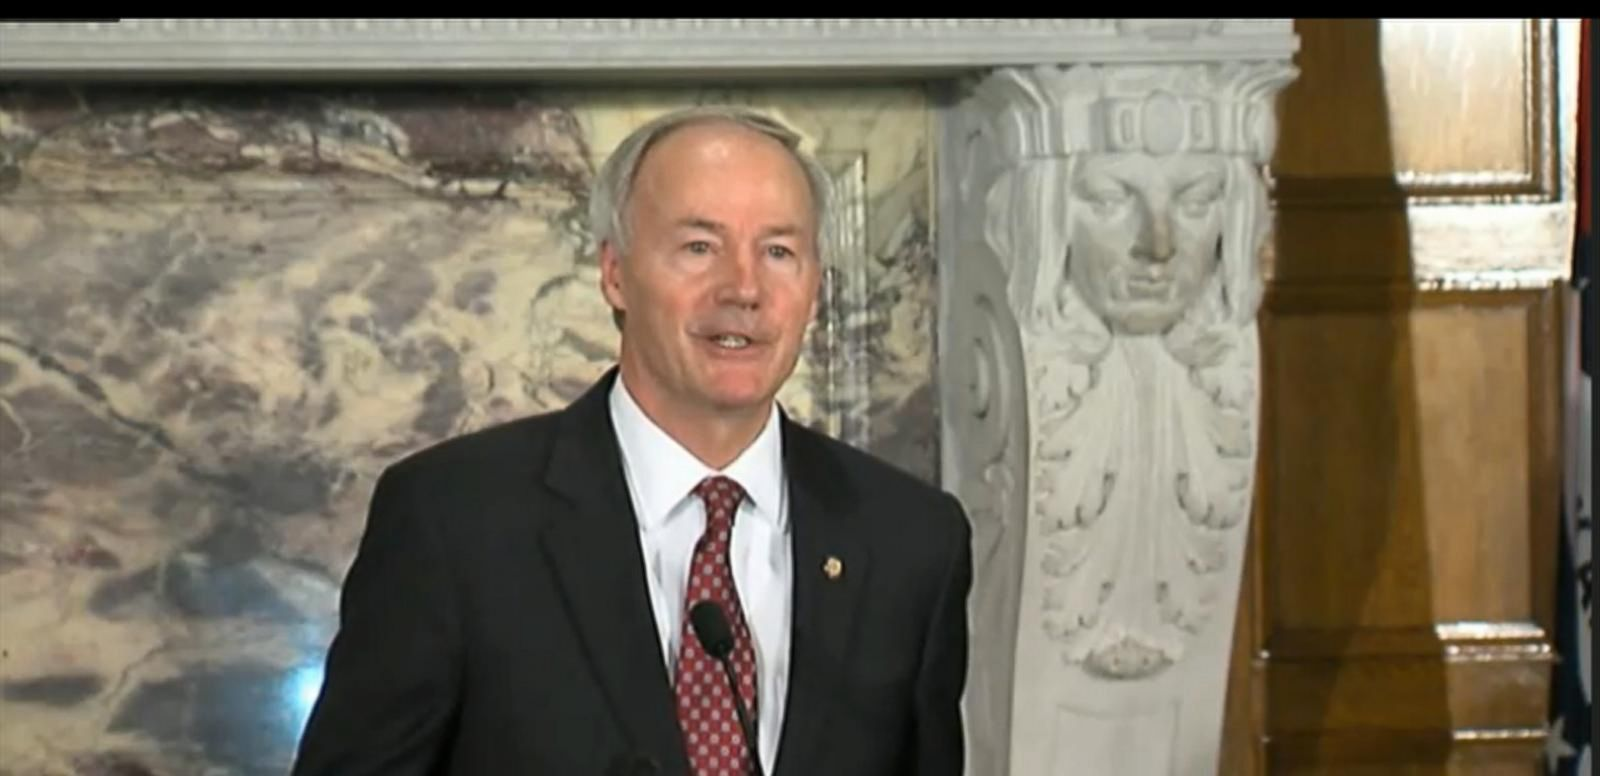 VIDEO: Gov. Asa Hutchinson, R-Arkansas, asked the state legislature to alter the religious freedom bill to more closely mirror the federal law before he will sign it.